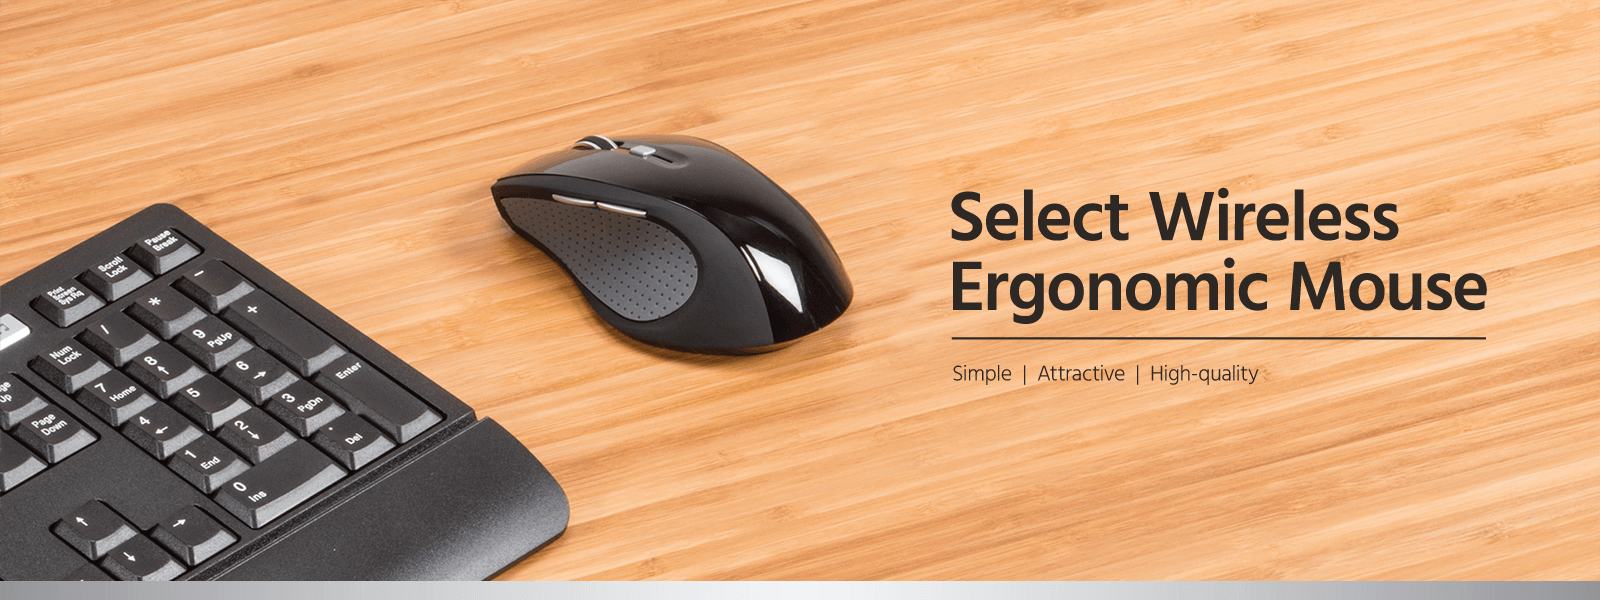 Select Wireless Ergonomic Mouse